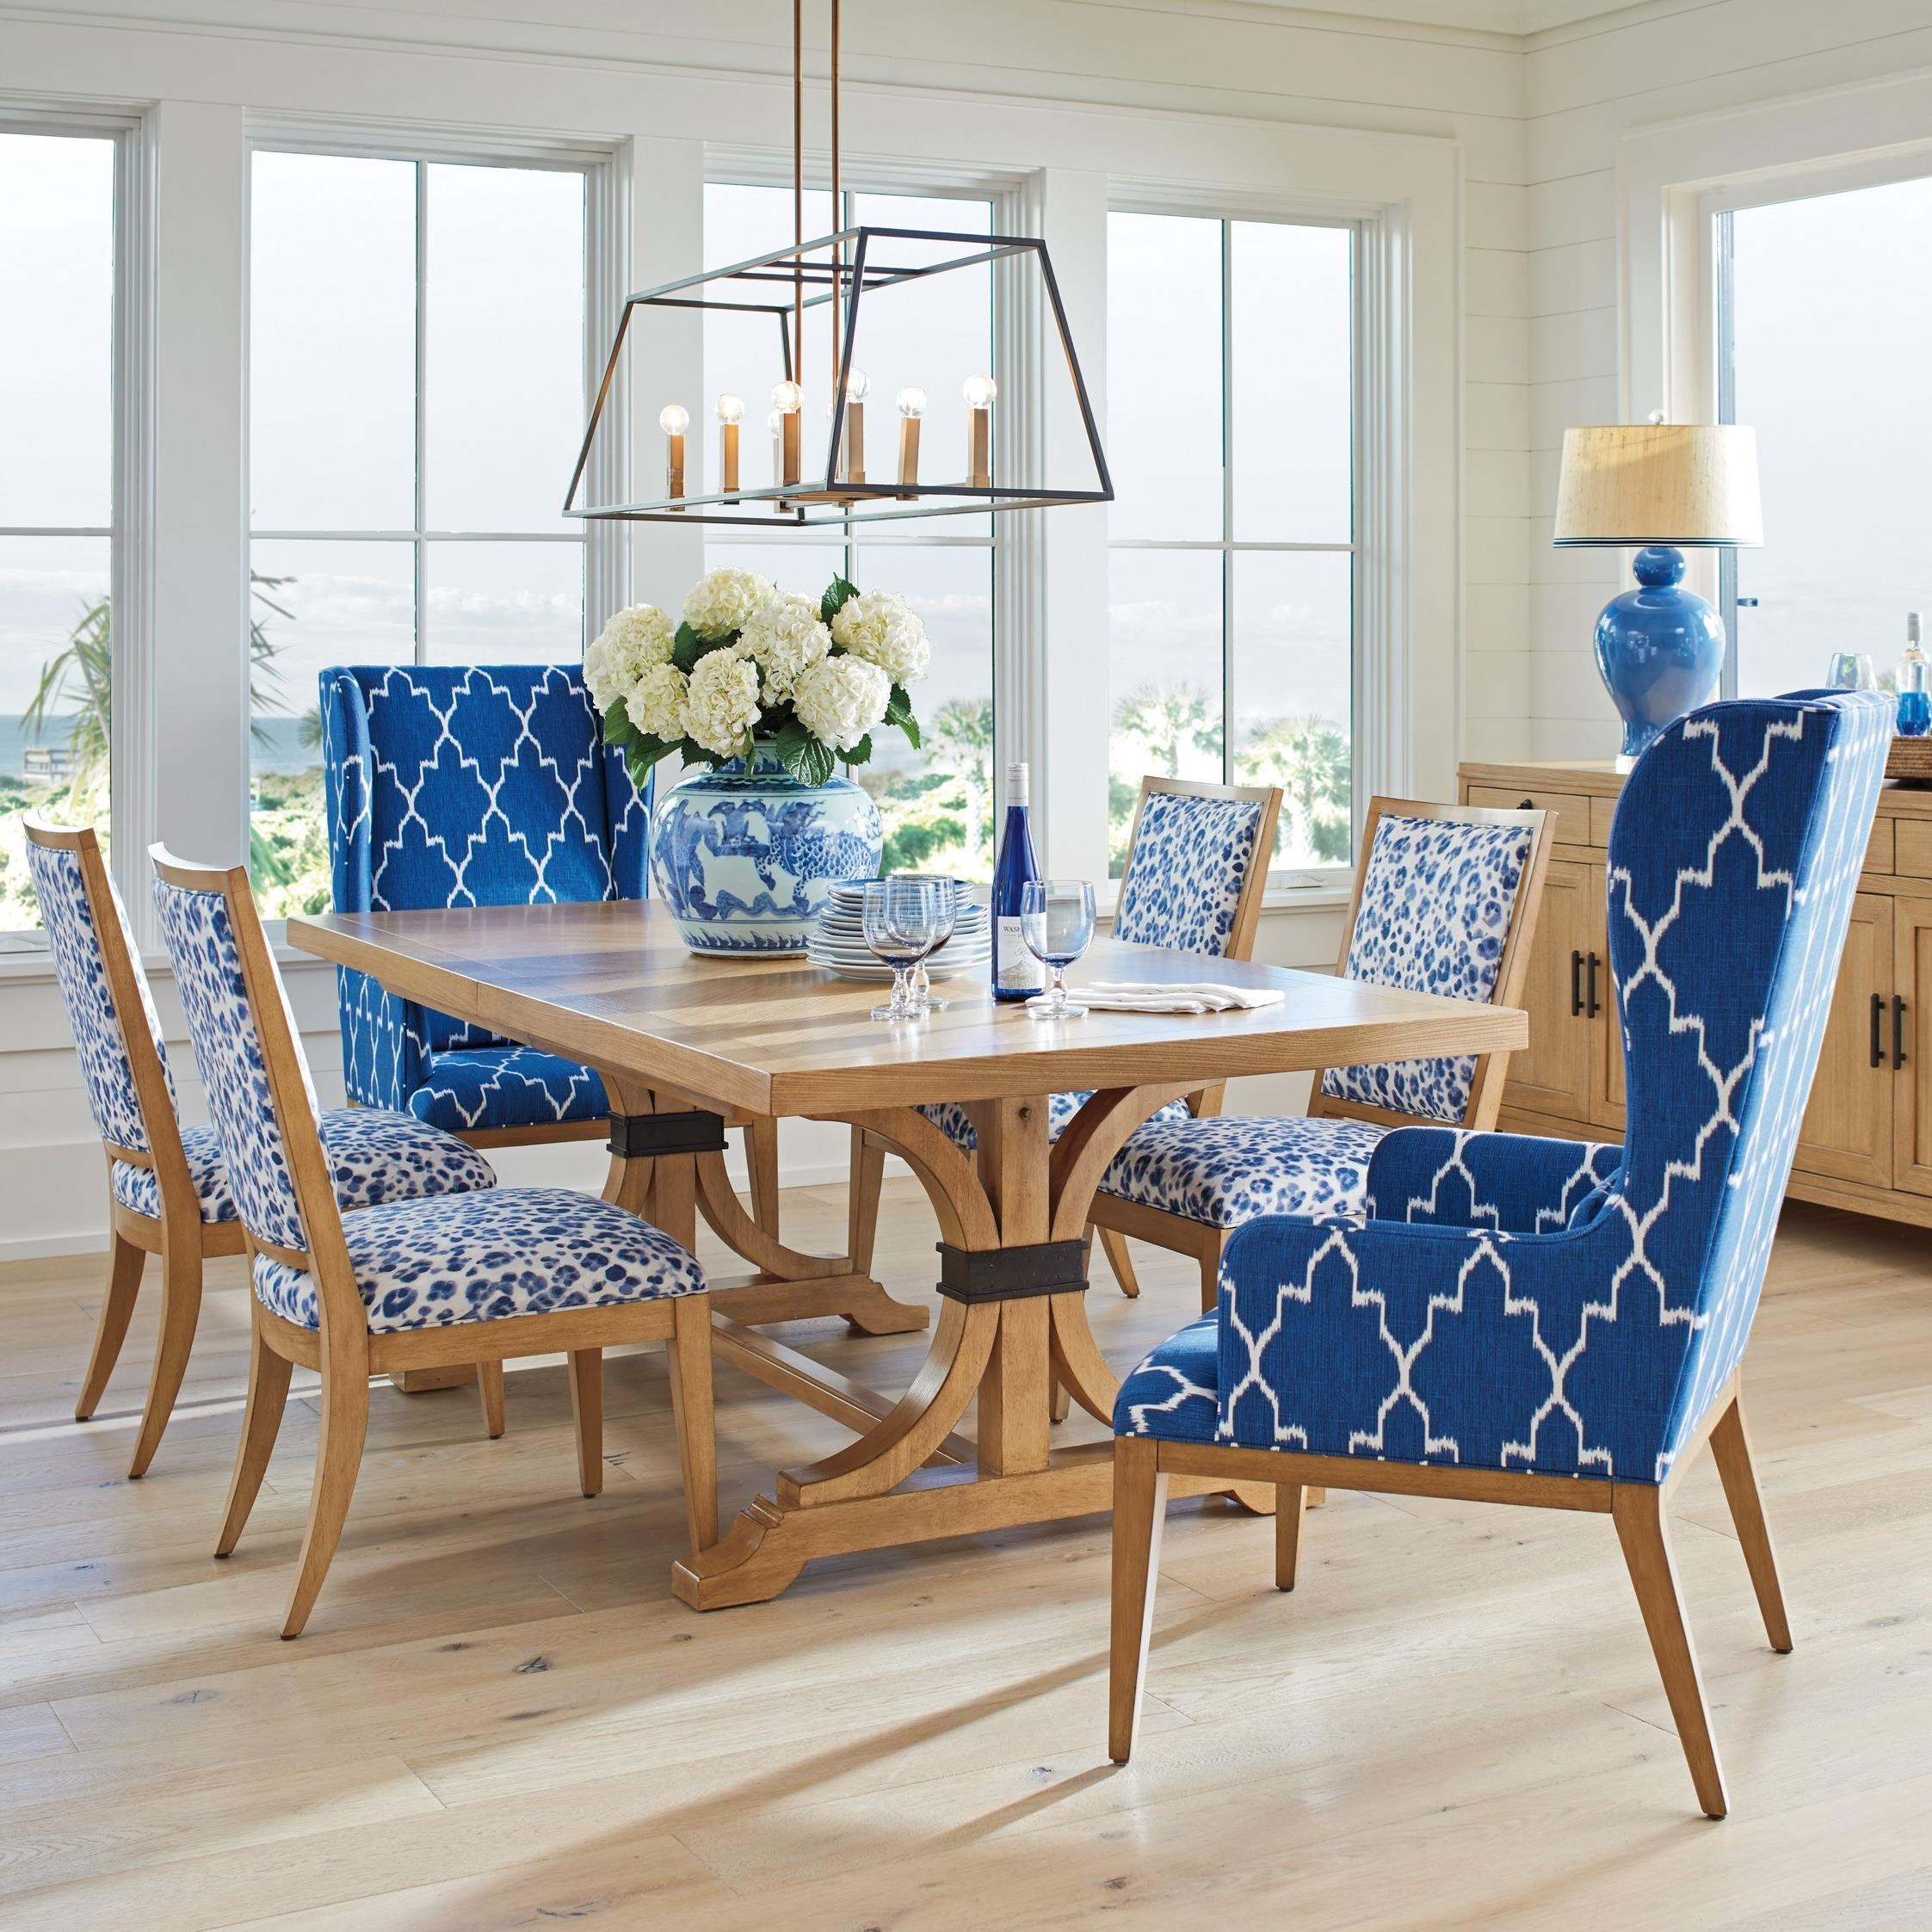 Newport 7 Pc Dining Set by Barclay Butera at Baer's Furniture